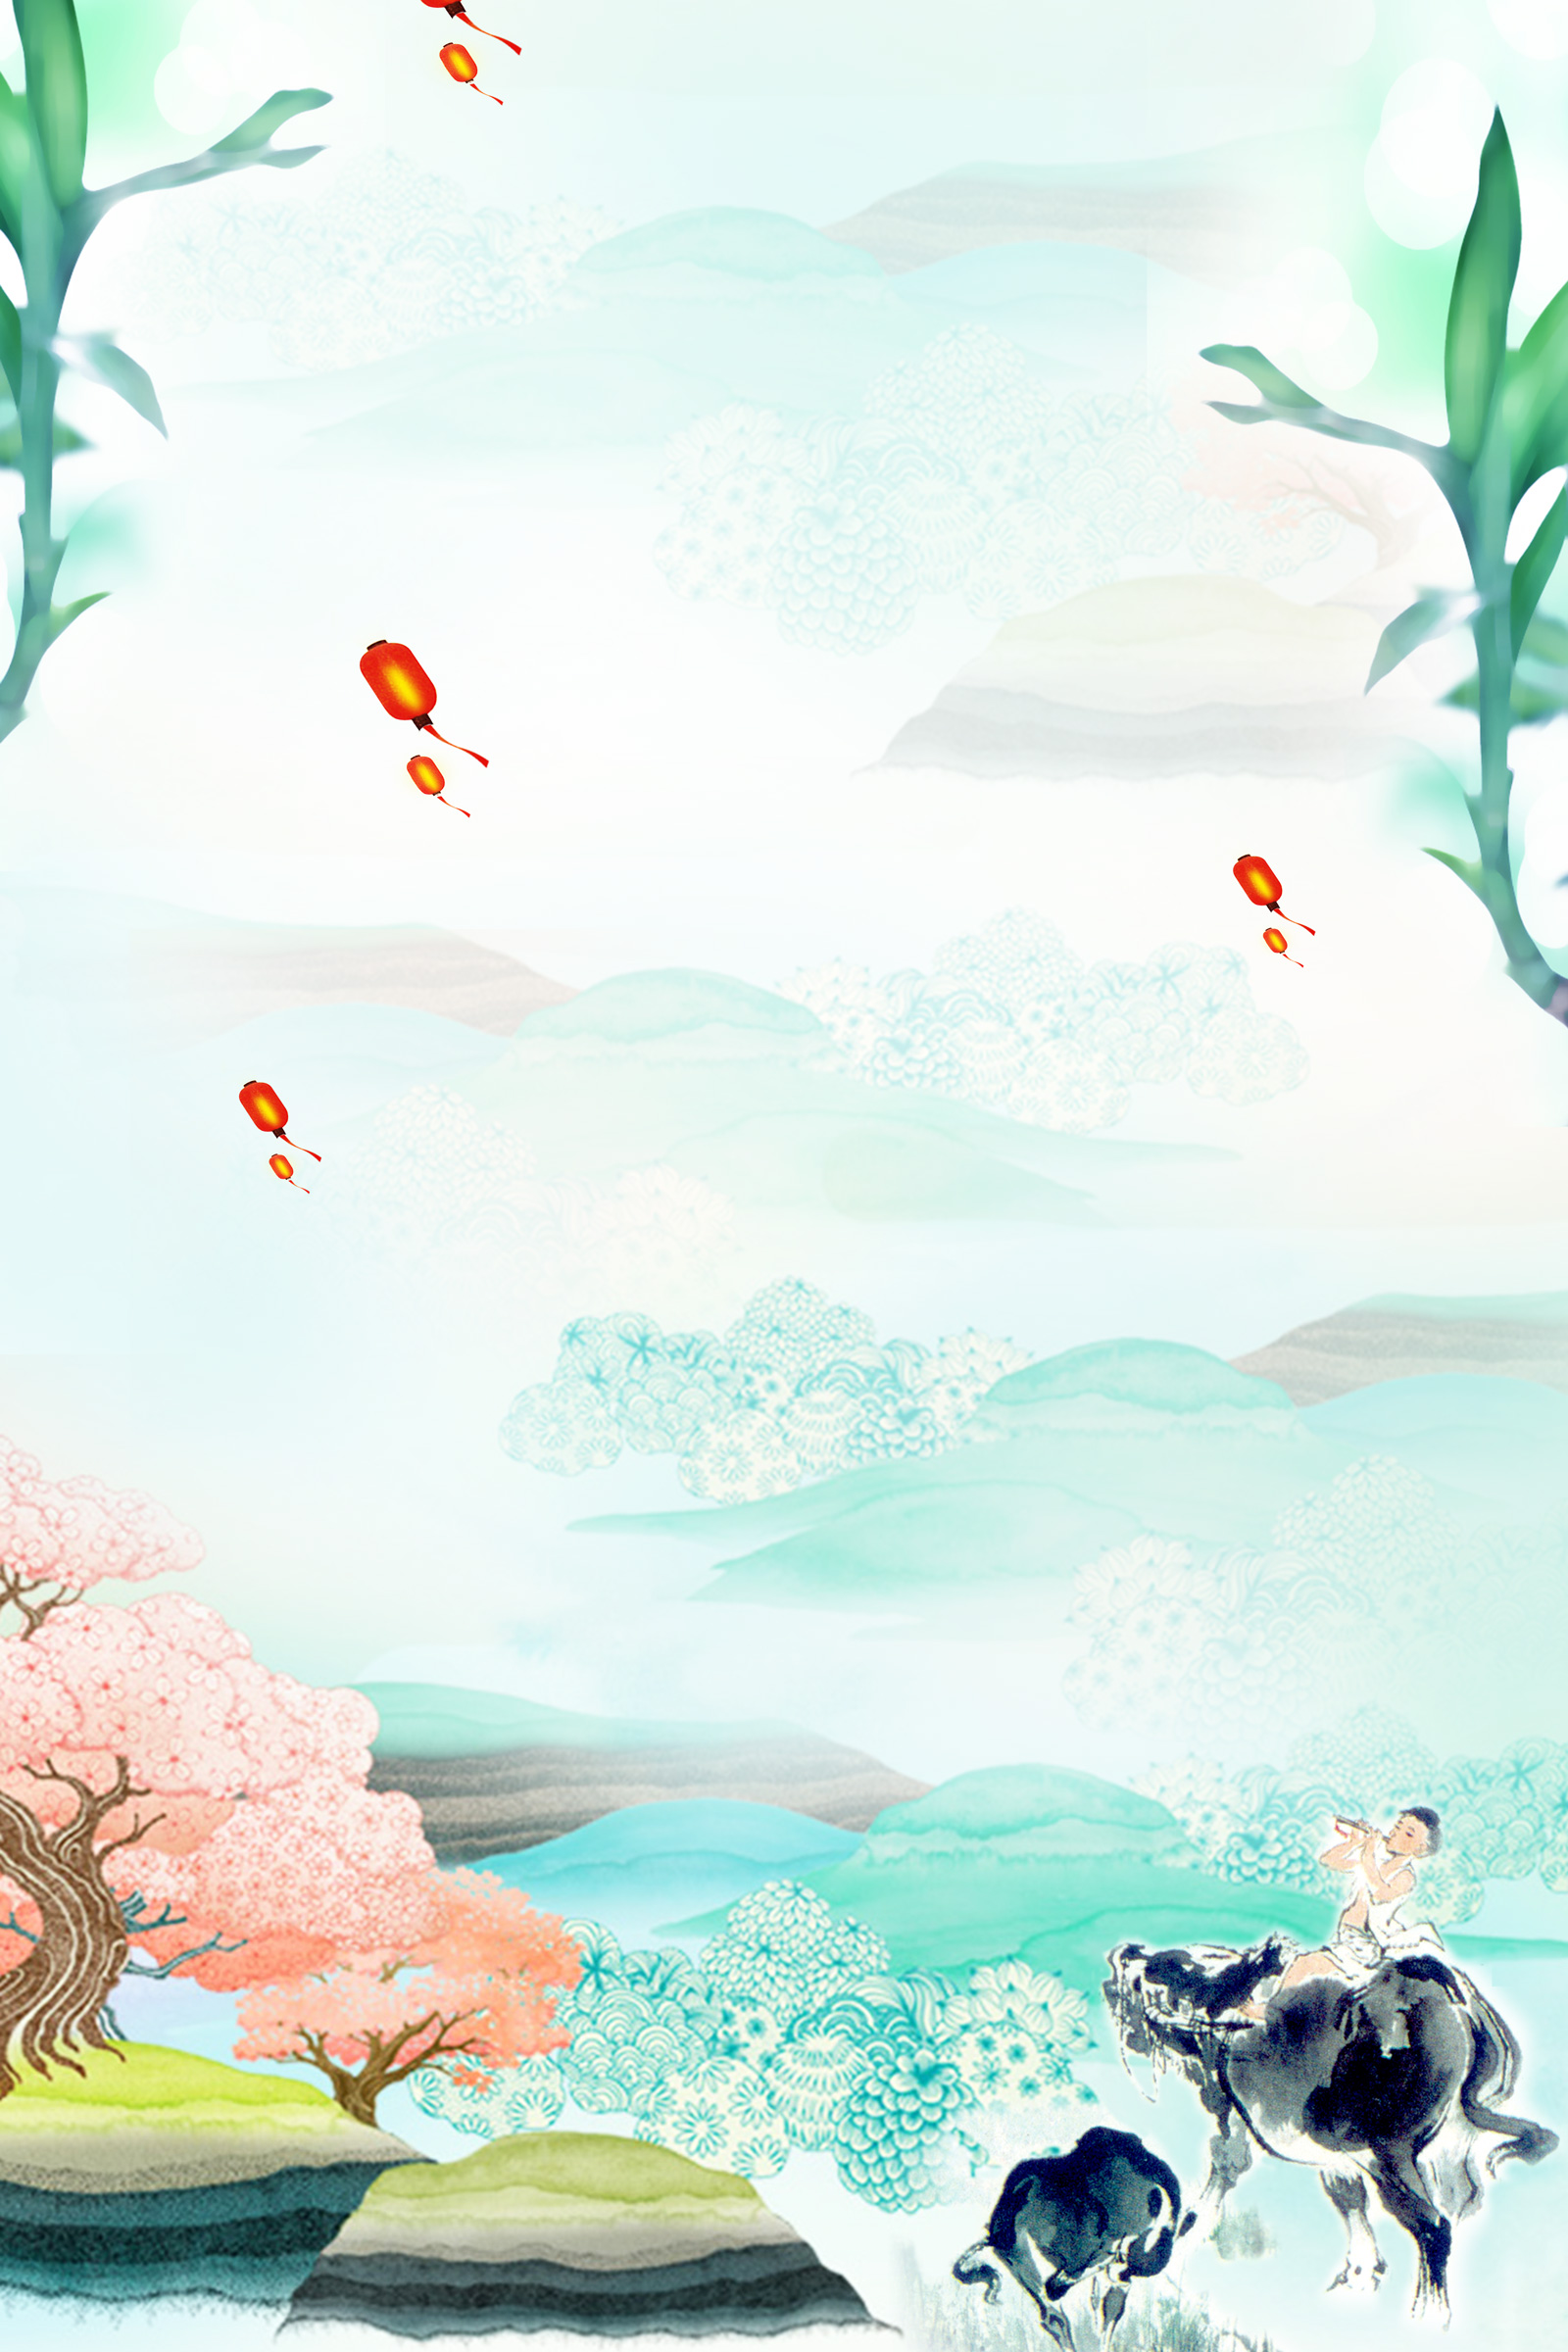 Chinese boy warm spring wind tomb-sweeping day poster background material PSD File Free Download